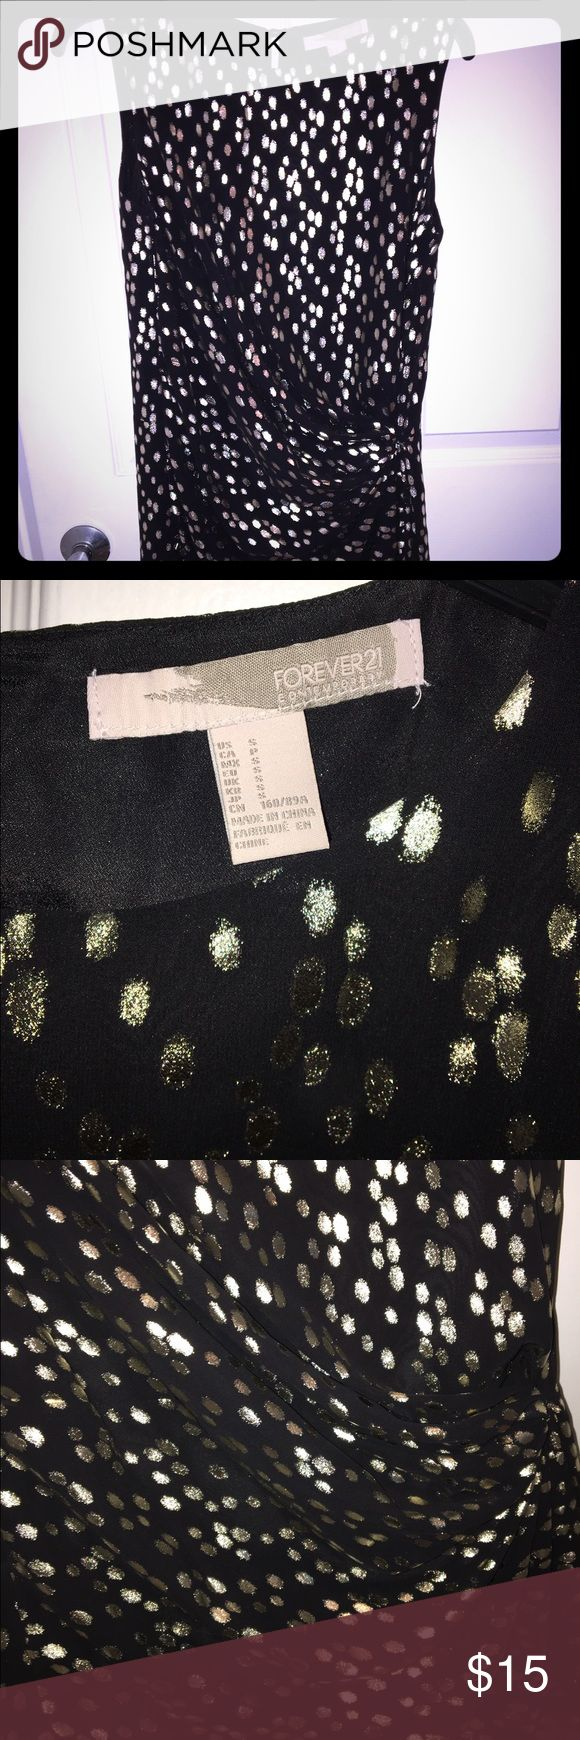 Black and gold metallic party dress LBD with gold metallic accents. Material drapes to the hip to give the dress a beautiful shape. Forever 21 Dresses Midi